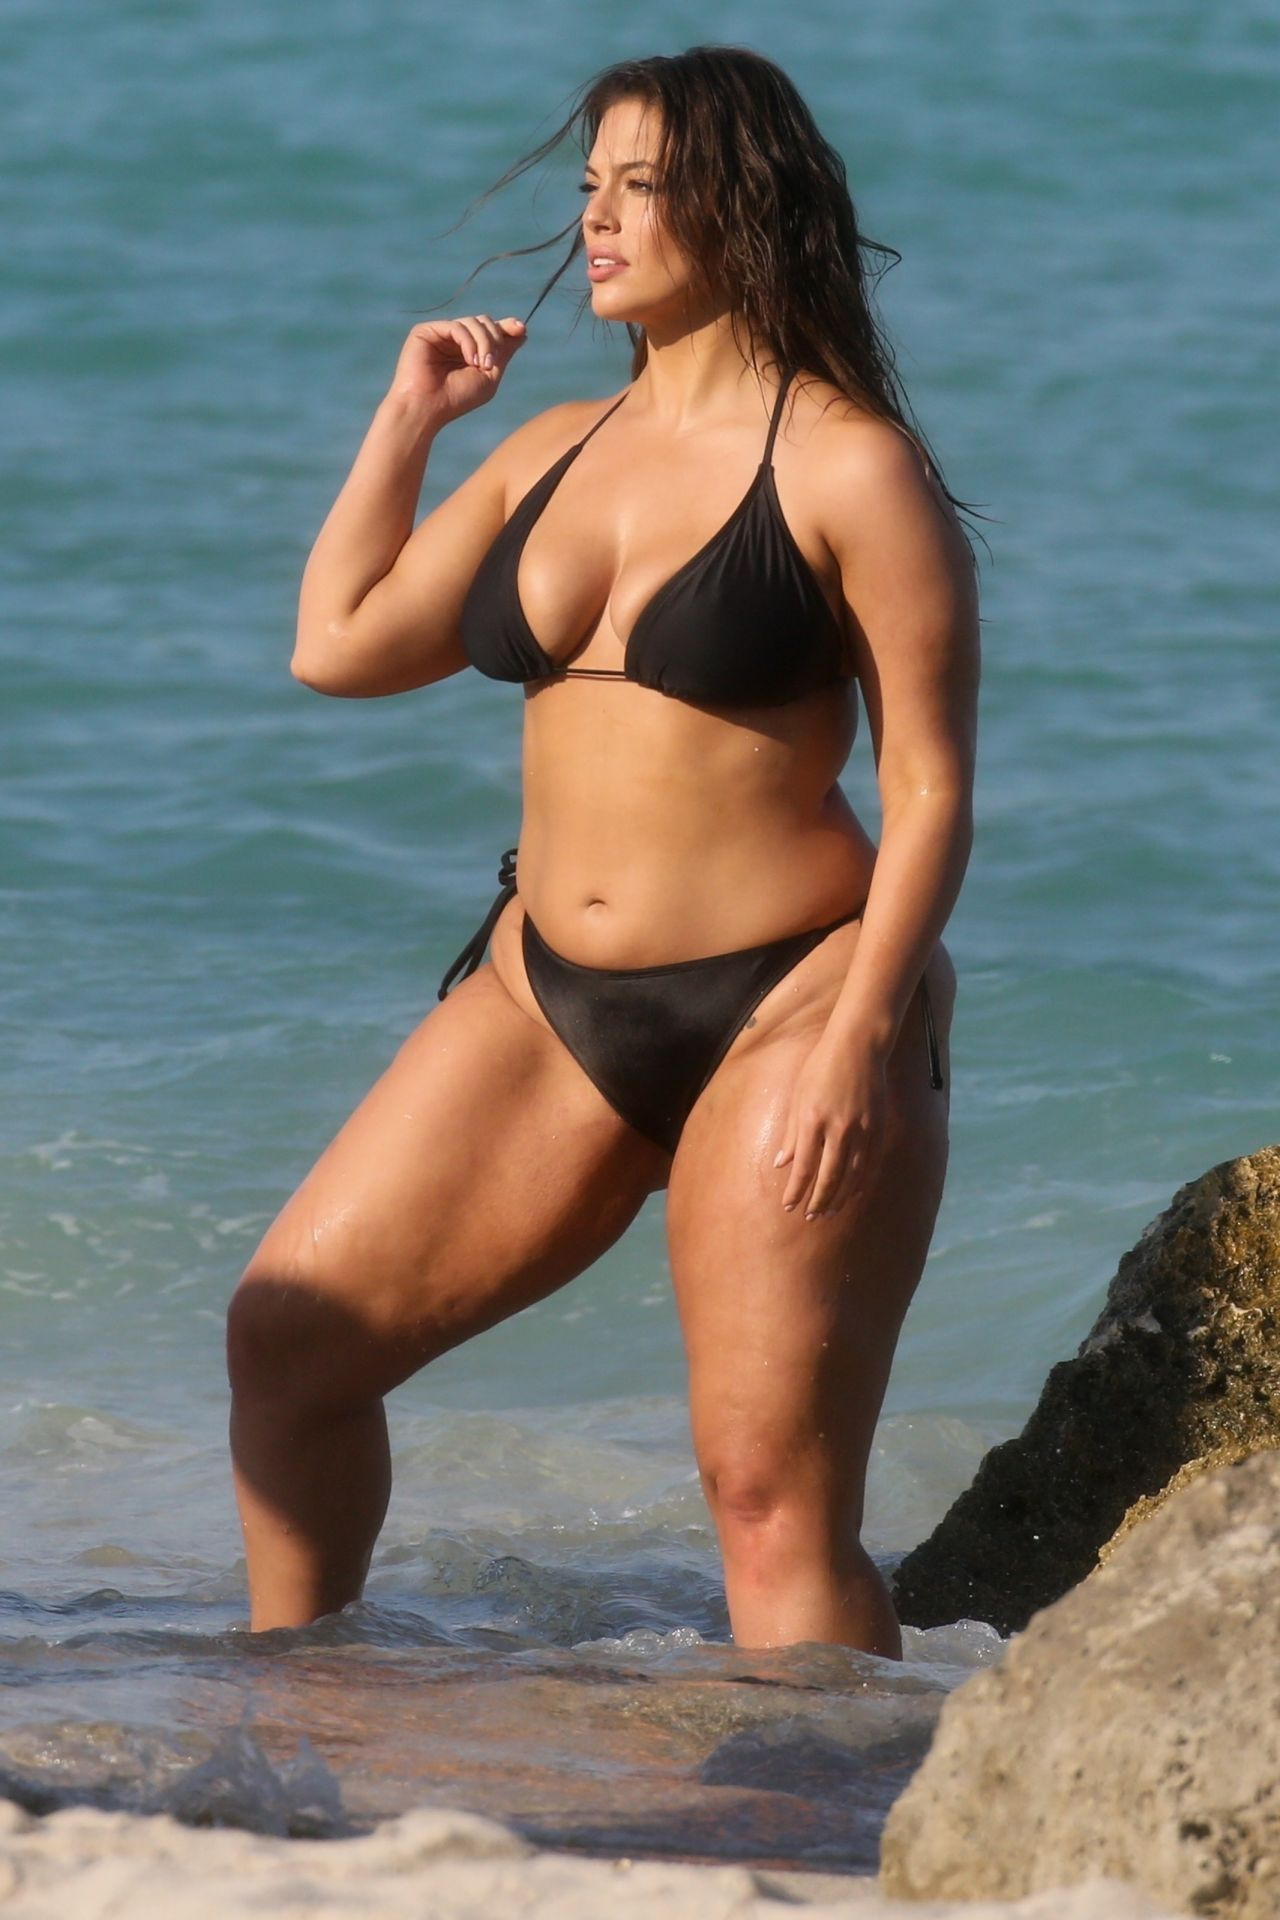 Ashley Graham In A Black Bikini - Photoshoot On The Beach -3129